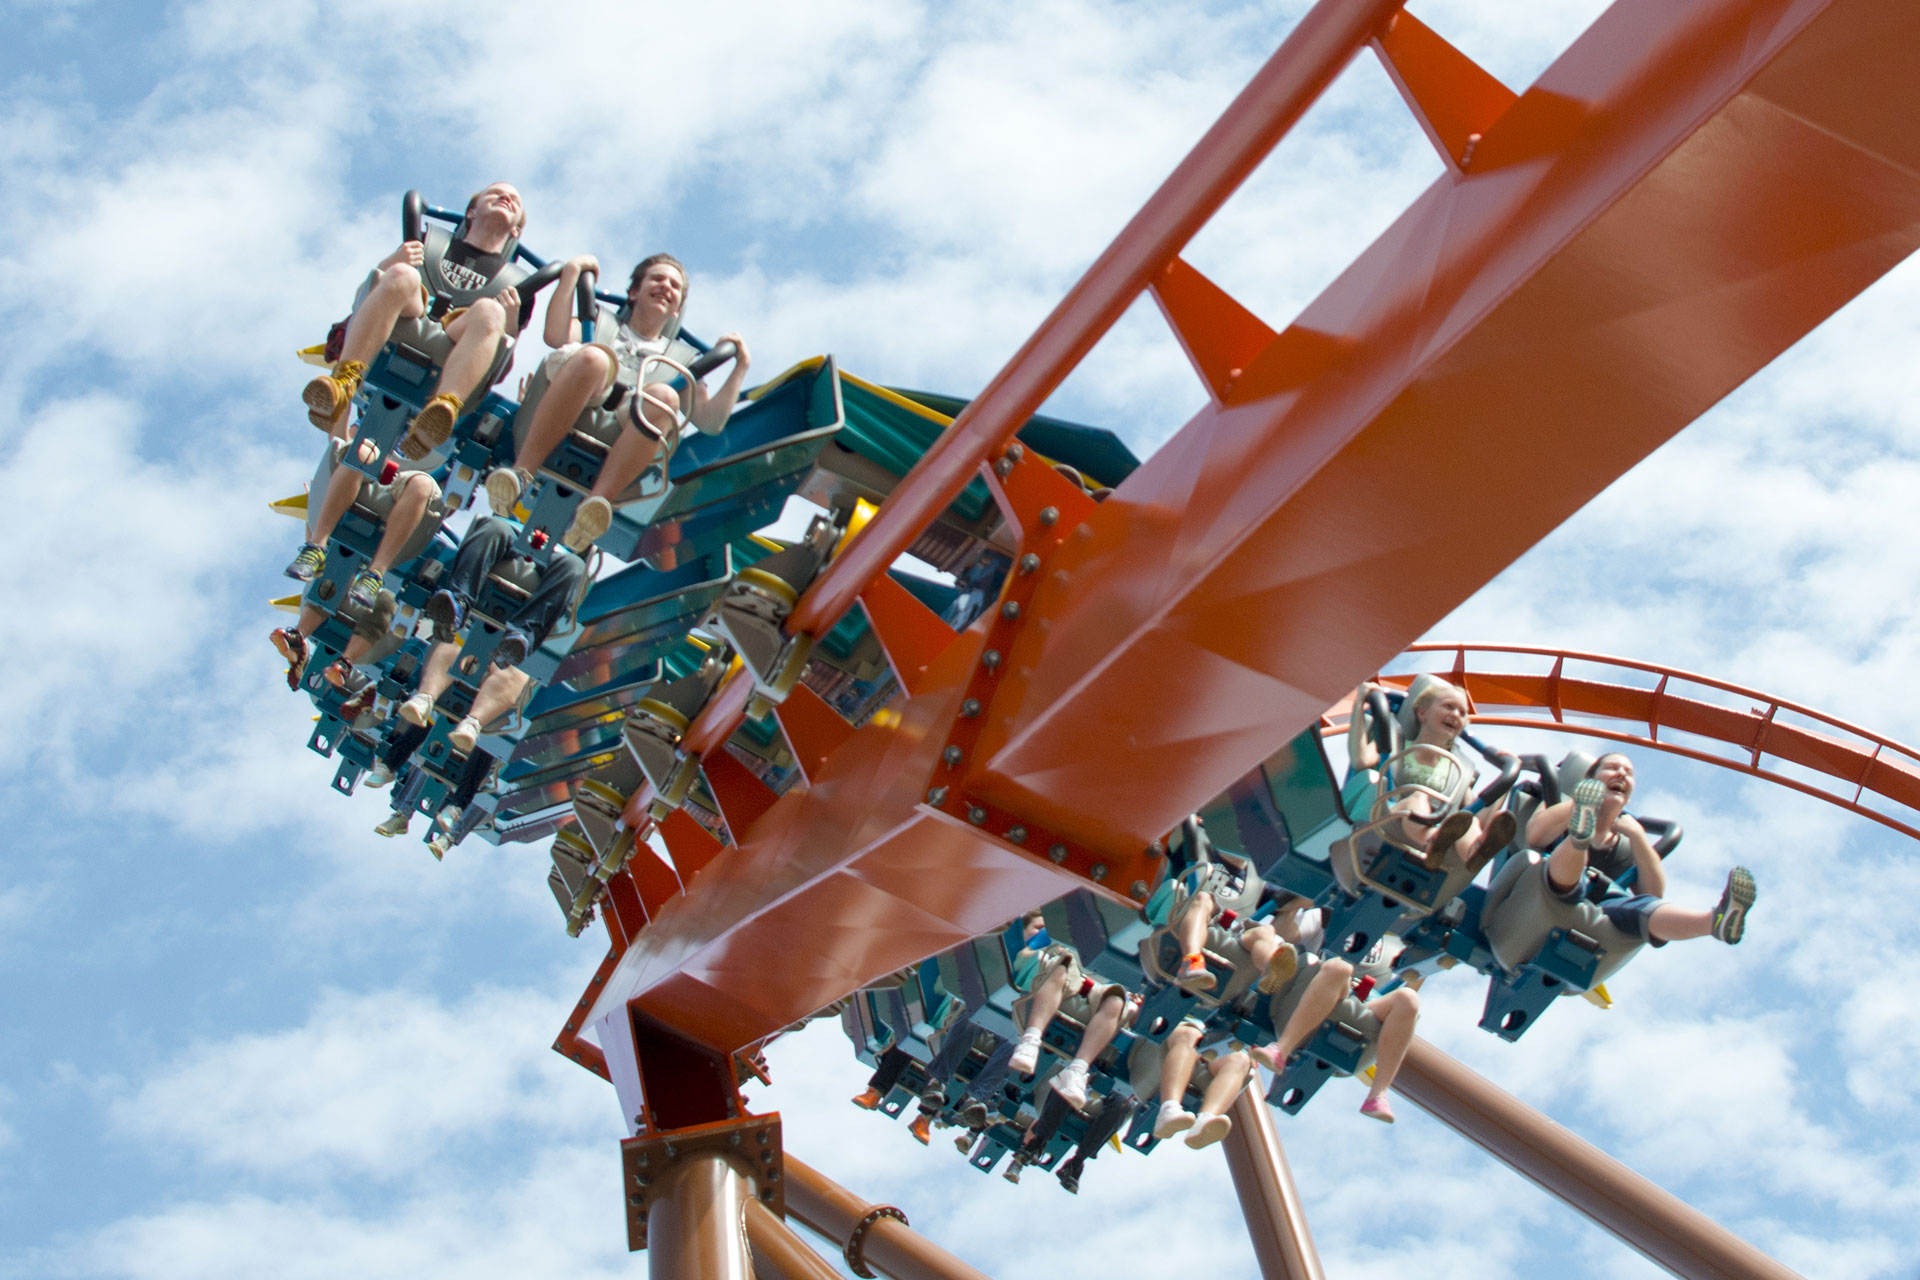 Thunderbird at Holiday World and Splashin' Safari; Courtesy of Holiday World and Splashin' Safari